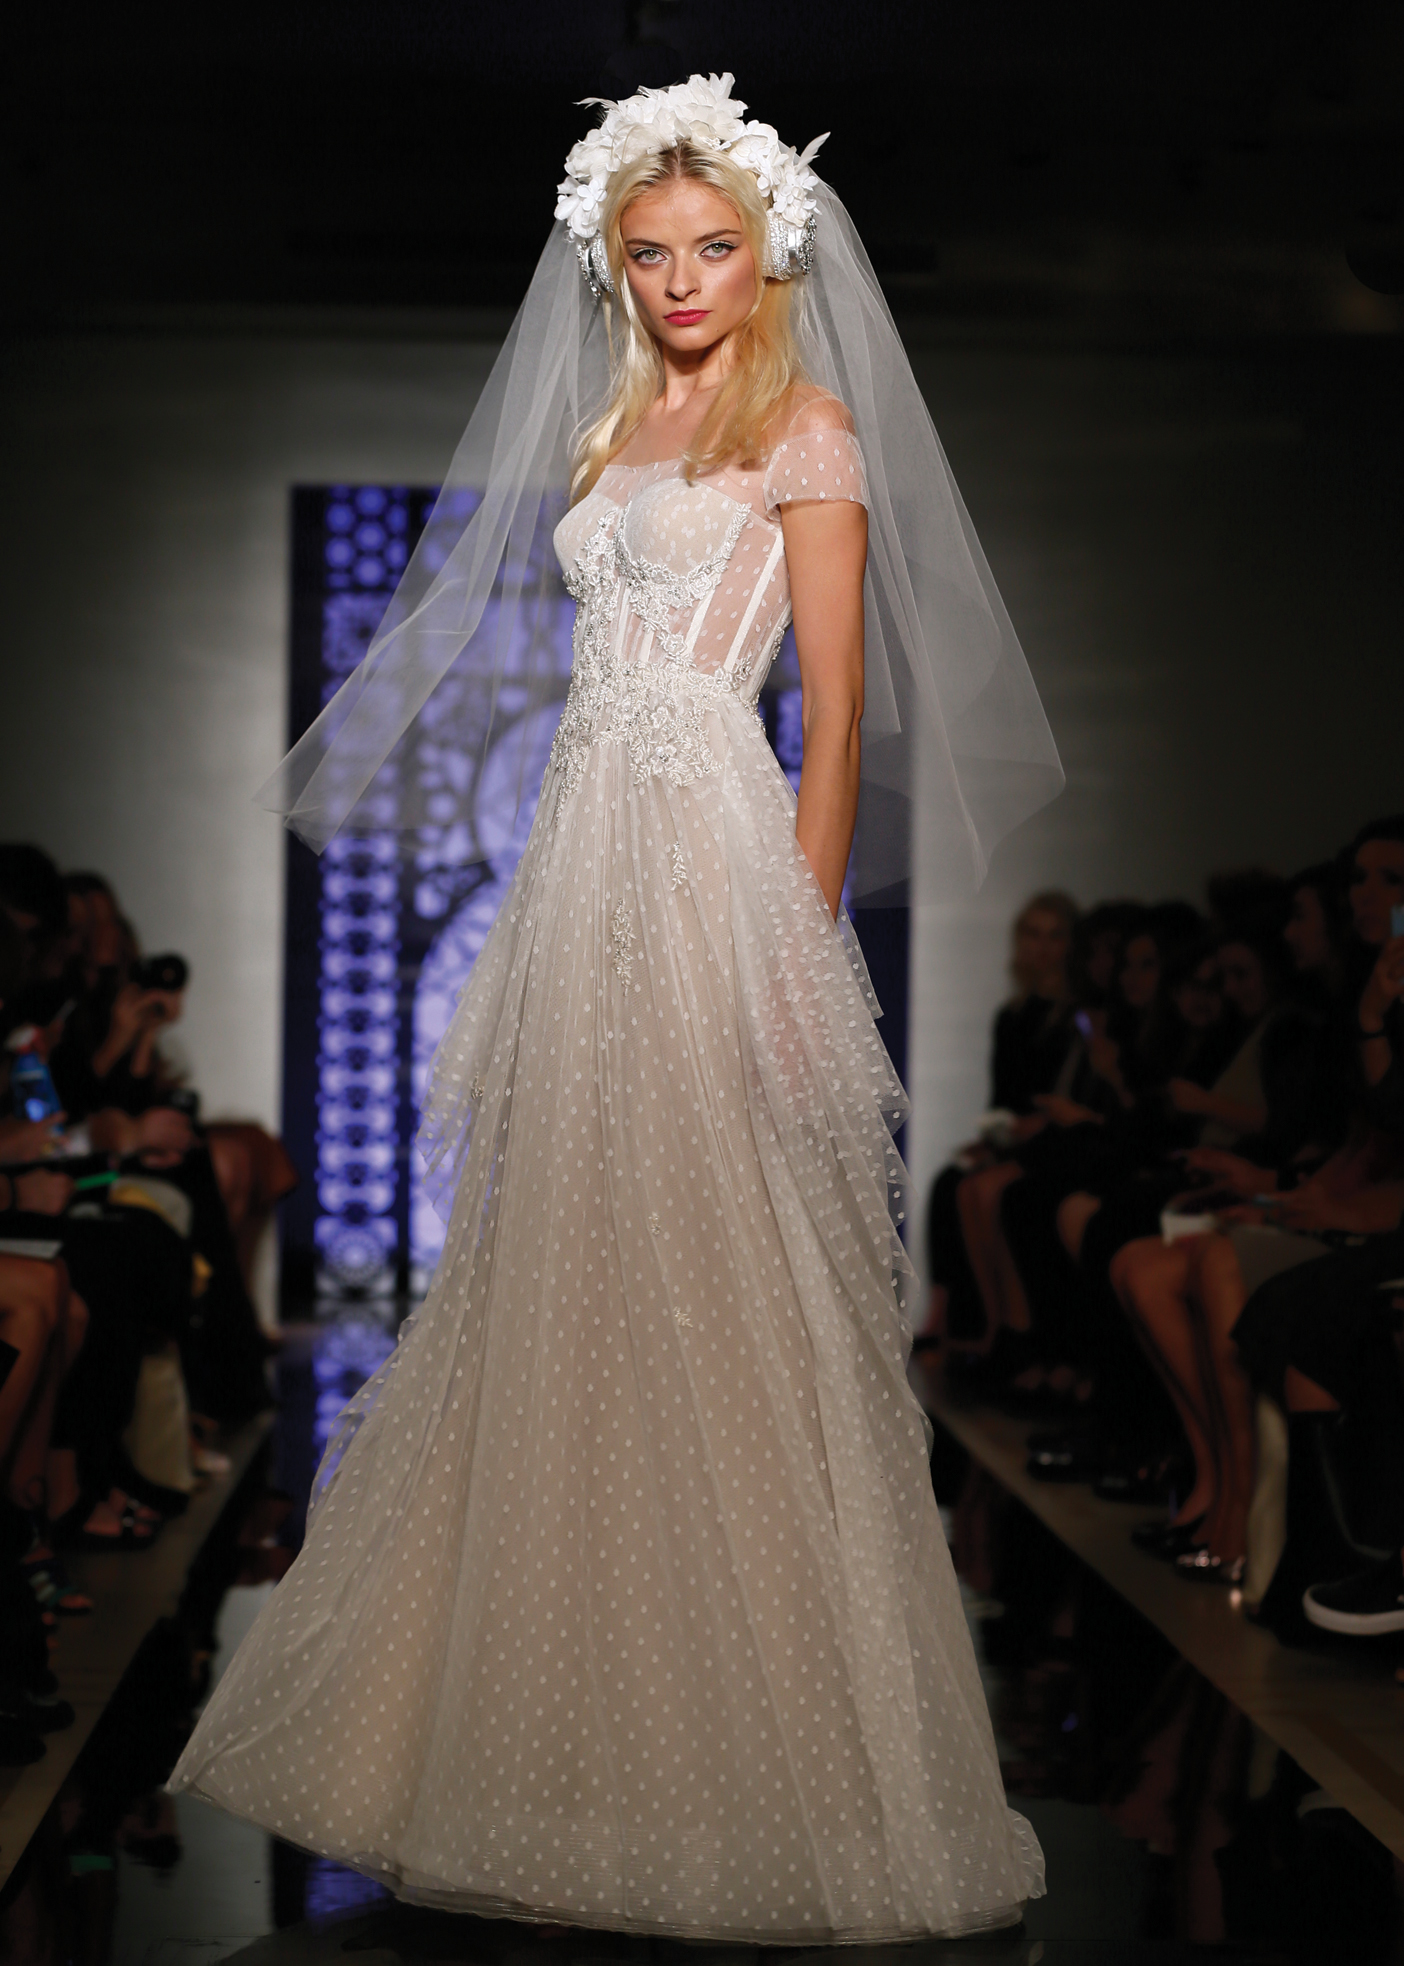 A-Line Dress Bridal Wedding Gown by Reem Acra in NY, NJ